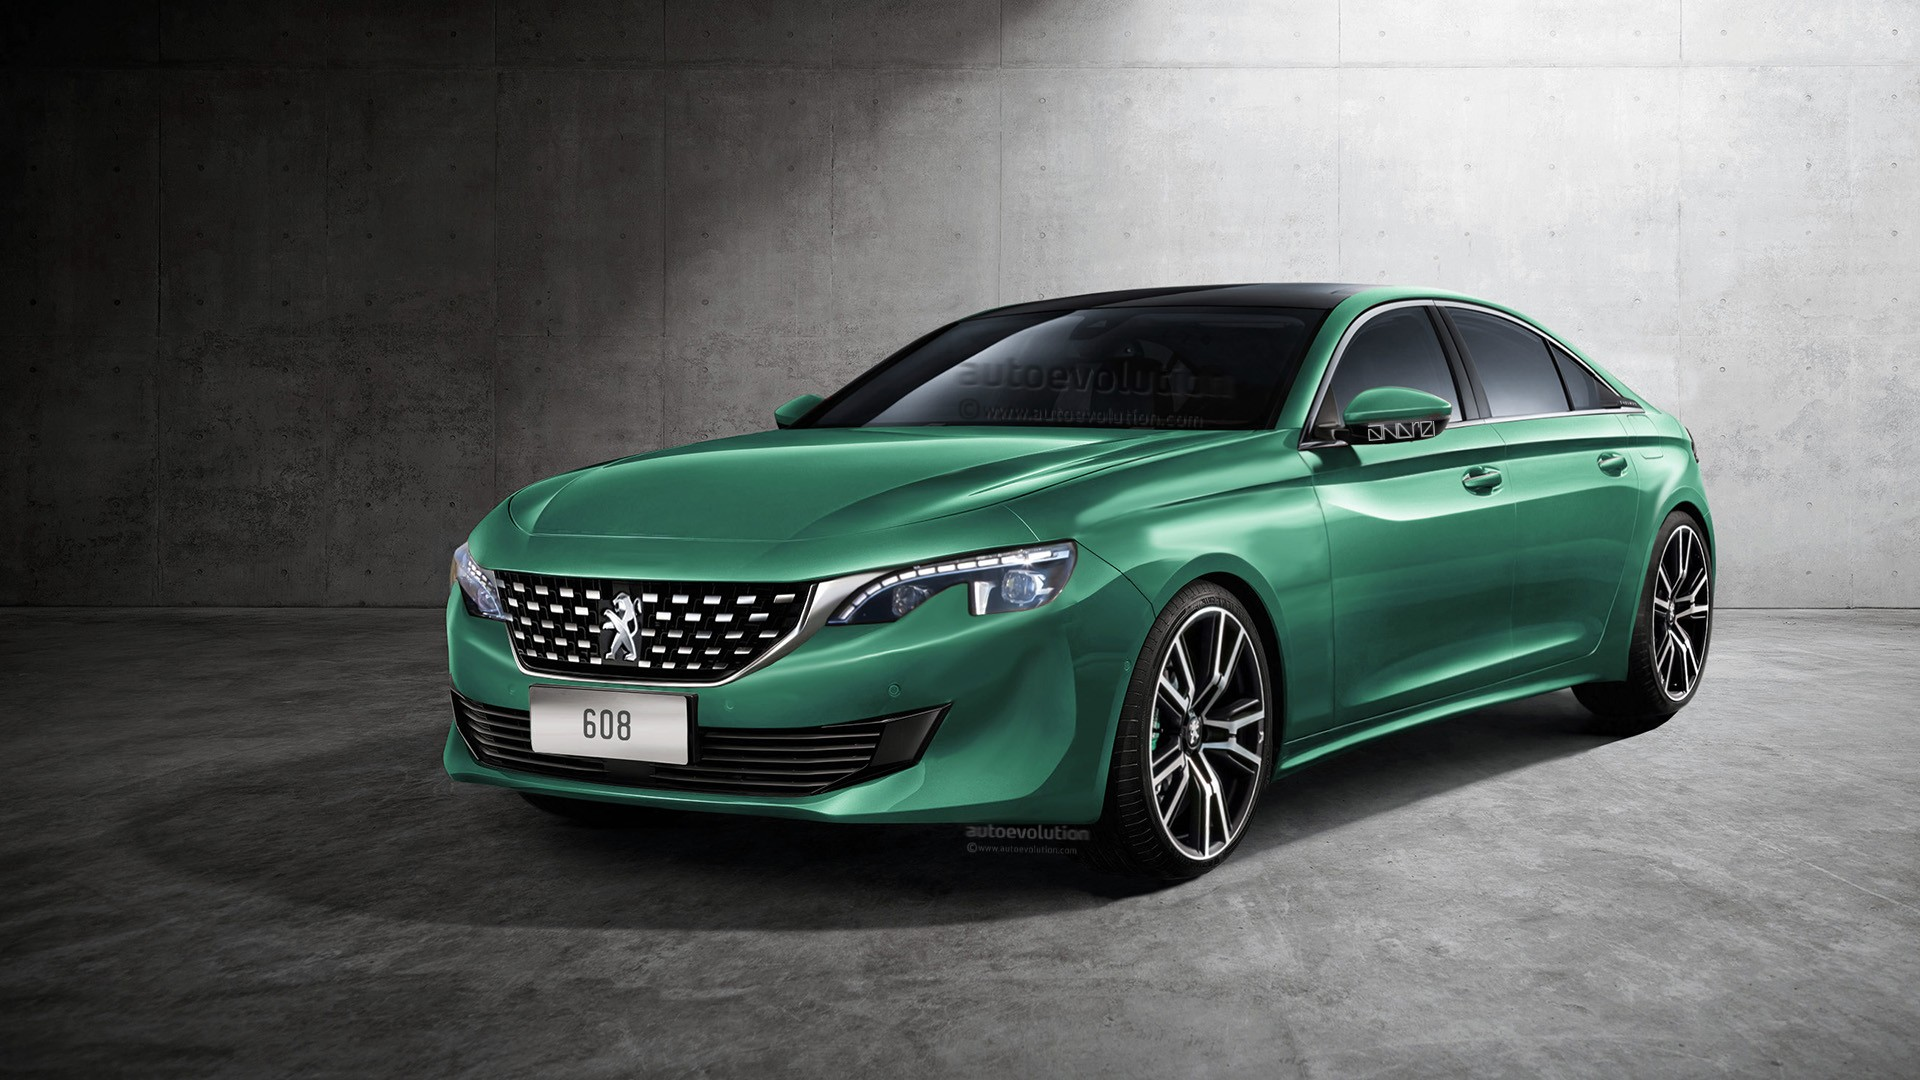 psa-fca-tie-up-could-result-in-a-sporty-rwd-peugeot-sedan-like-this-one_1